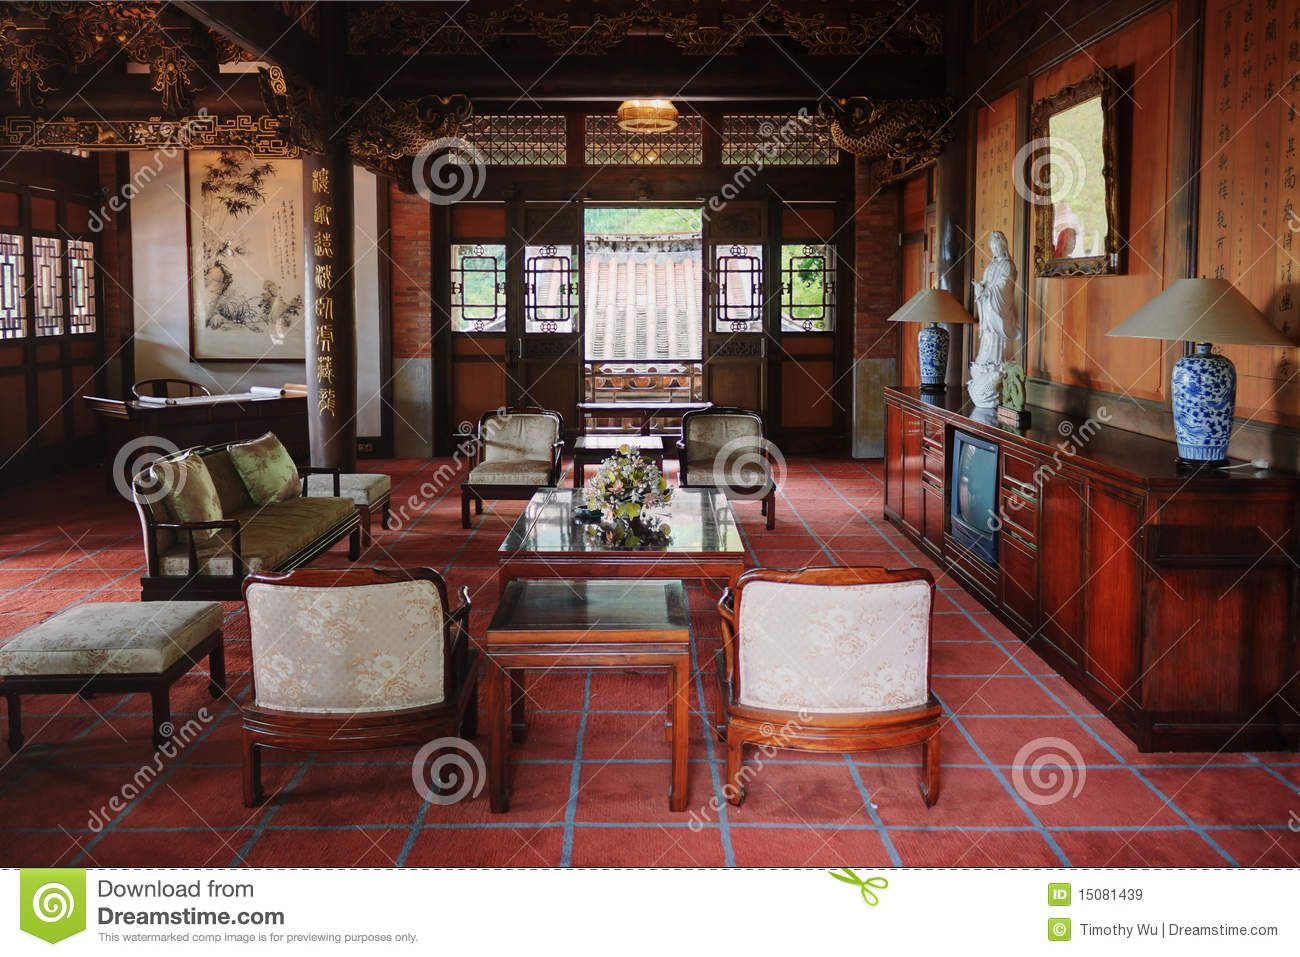 Traditional asian interior traditional asian interior design - Chinese Traditional House Interior Google Search